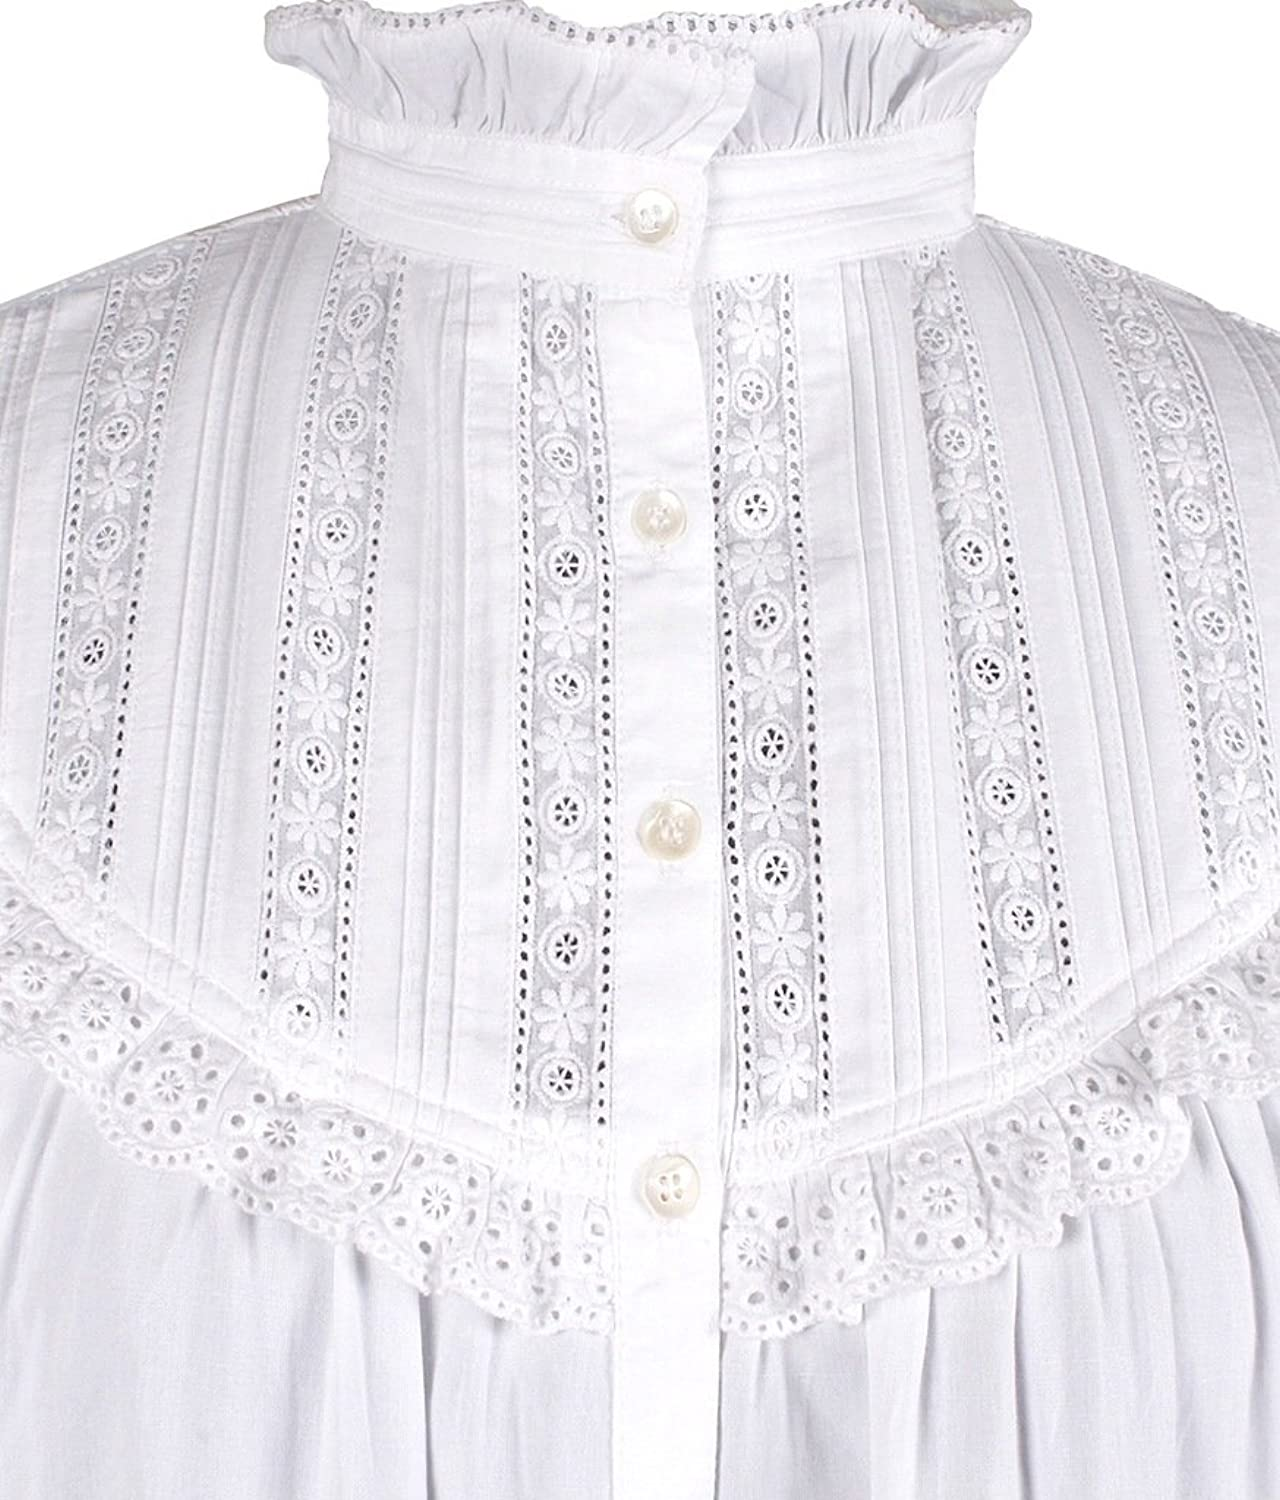 Cotton Lane White Cotton Victorian Edwardian Vintage Reproduction Nightdress. Sizes UK 8 to 38.